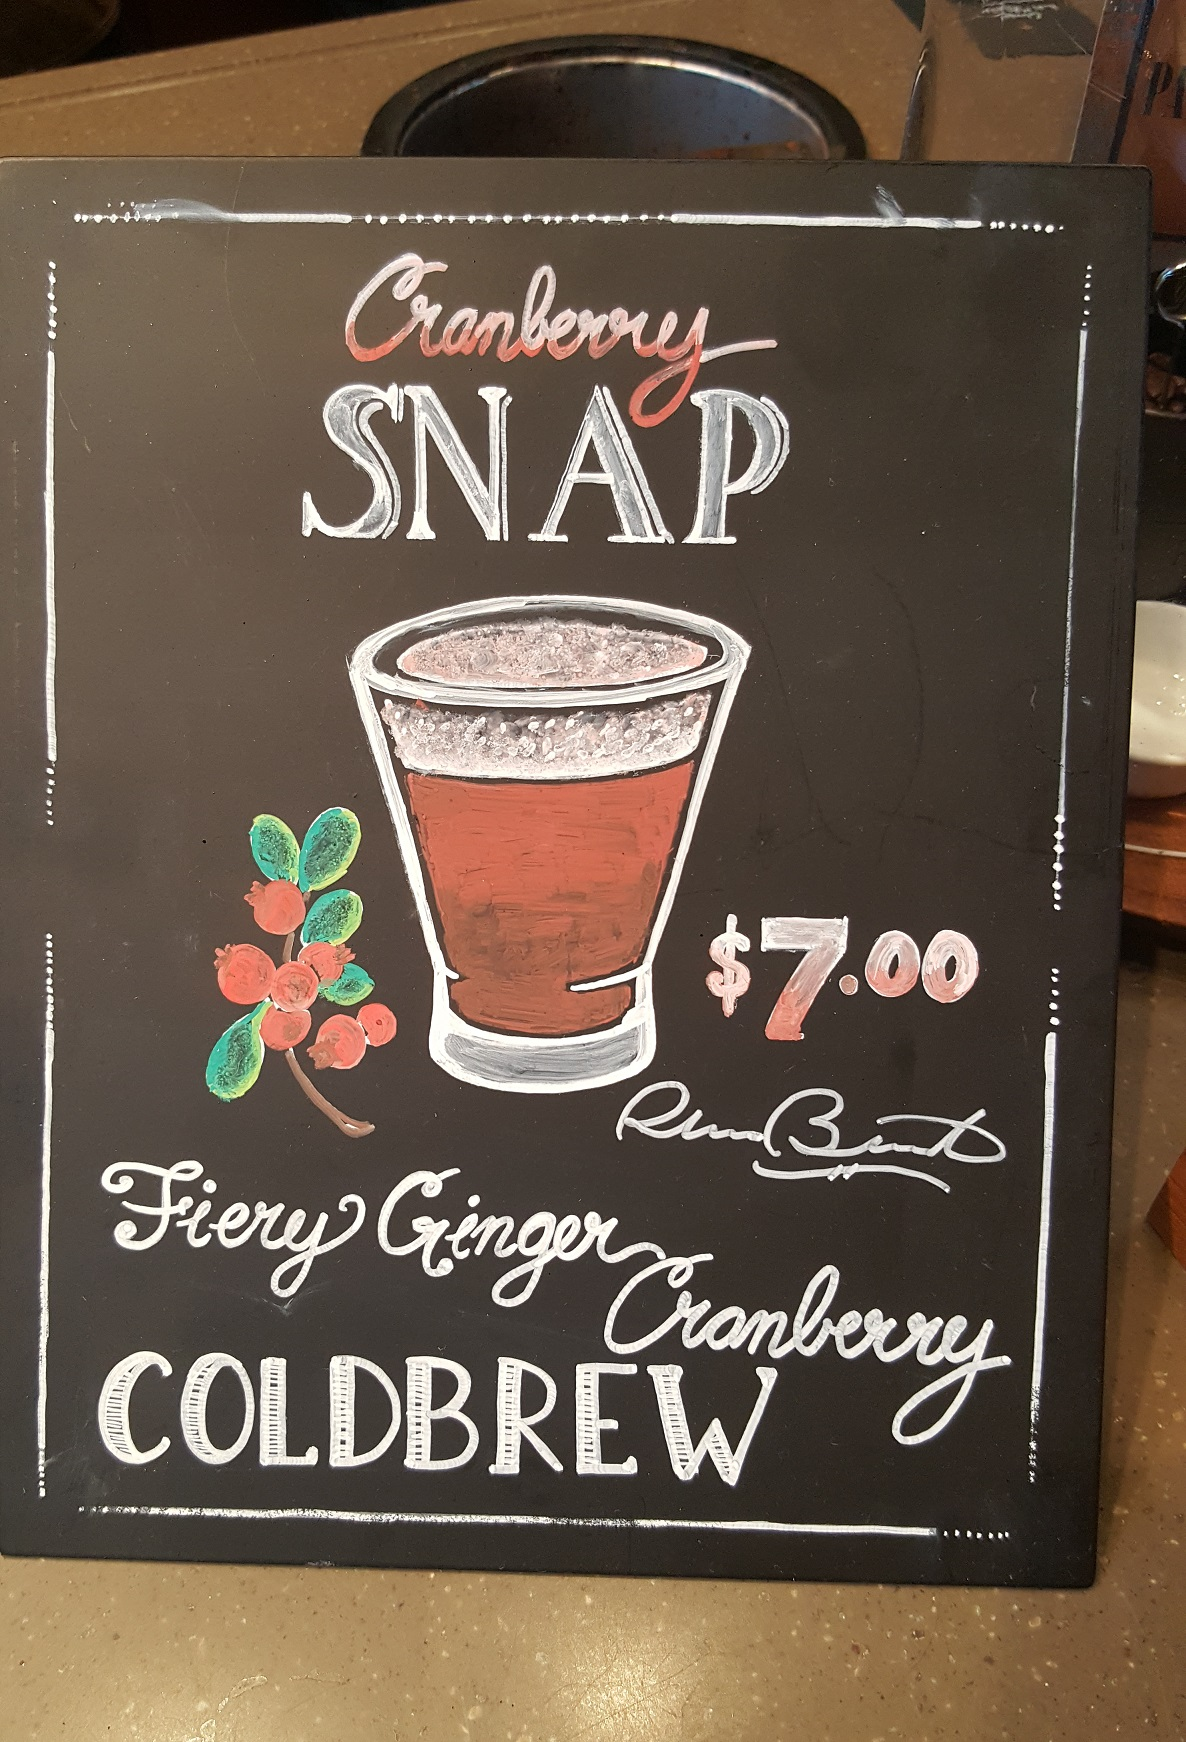 20160912_183812 sign for the cranberry snap cold brew.jpg